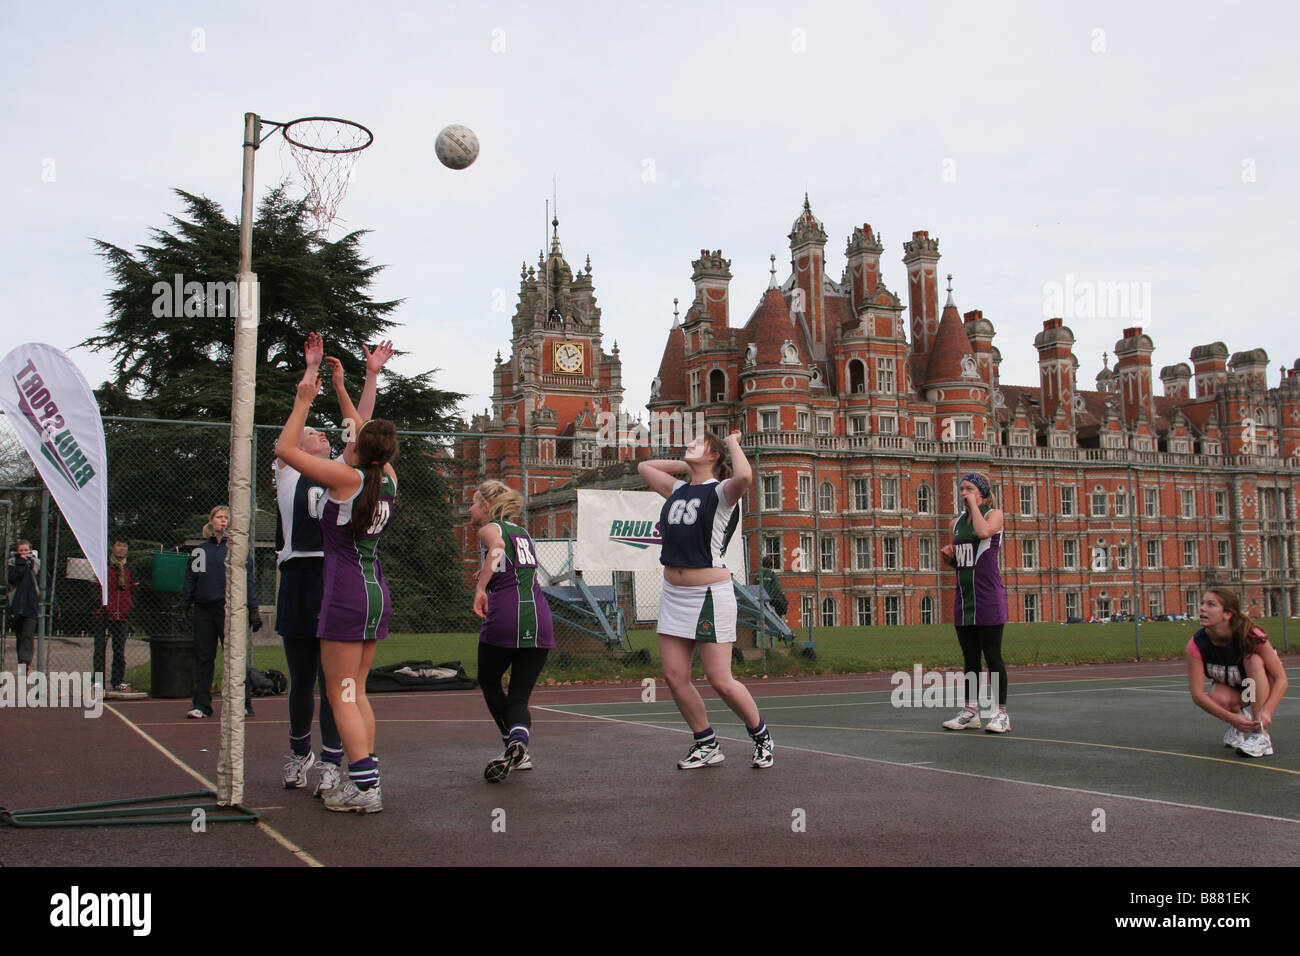 A shot in a netball match in front of the Founder's Building Royal Holloway University of London Egham Surrey - Stock Image